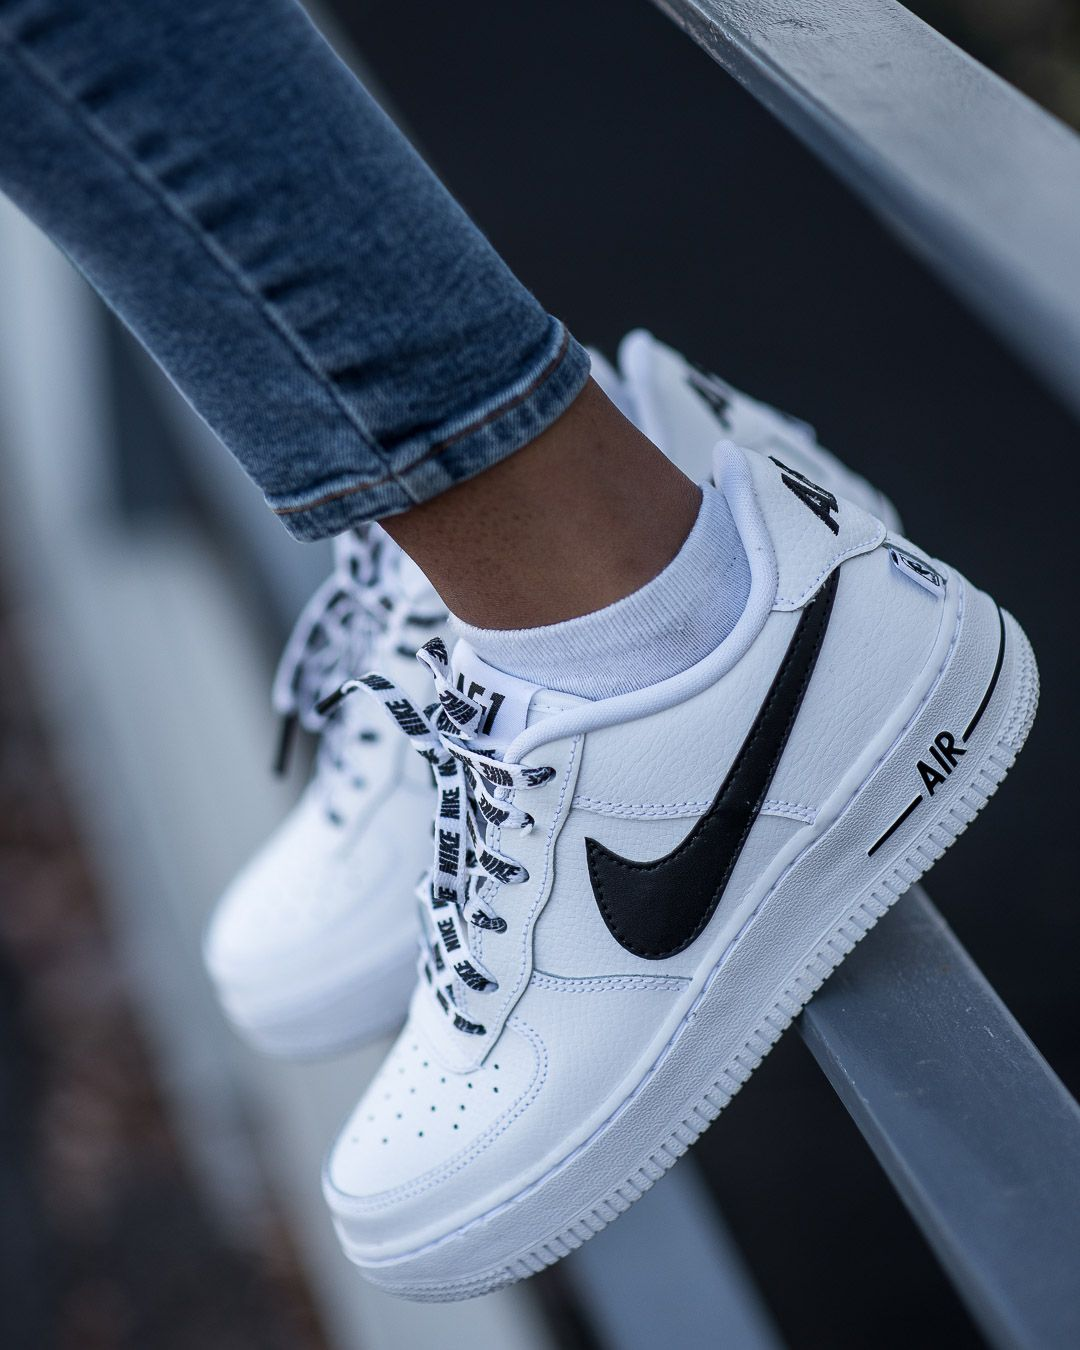 best website 3db7f a9759 Tenis o zapatillas para mujer. r y o s t o x. Nike Airforce 1  Sneakers of  the Month - Pose   Repeat